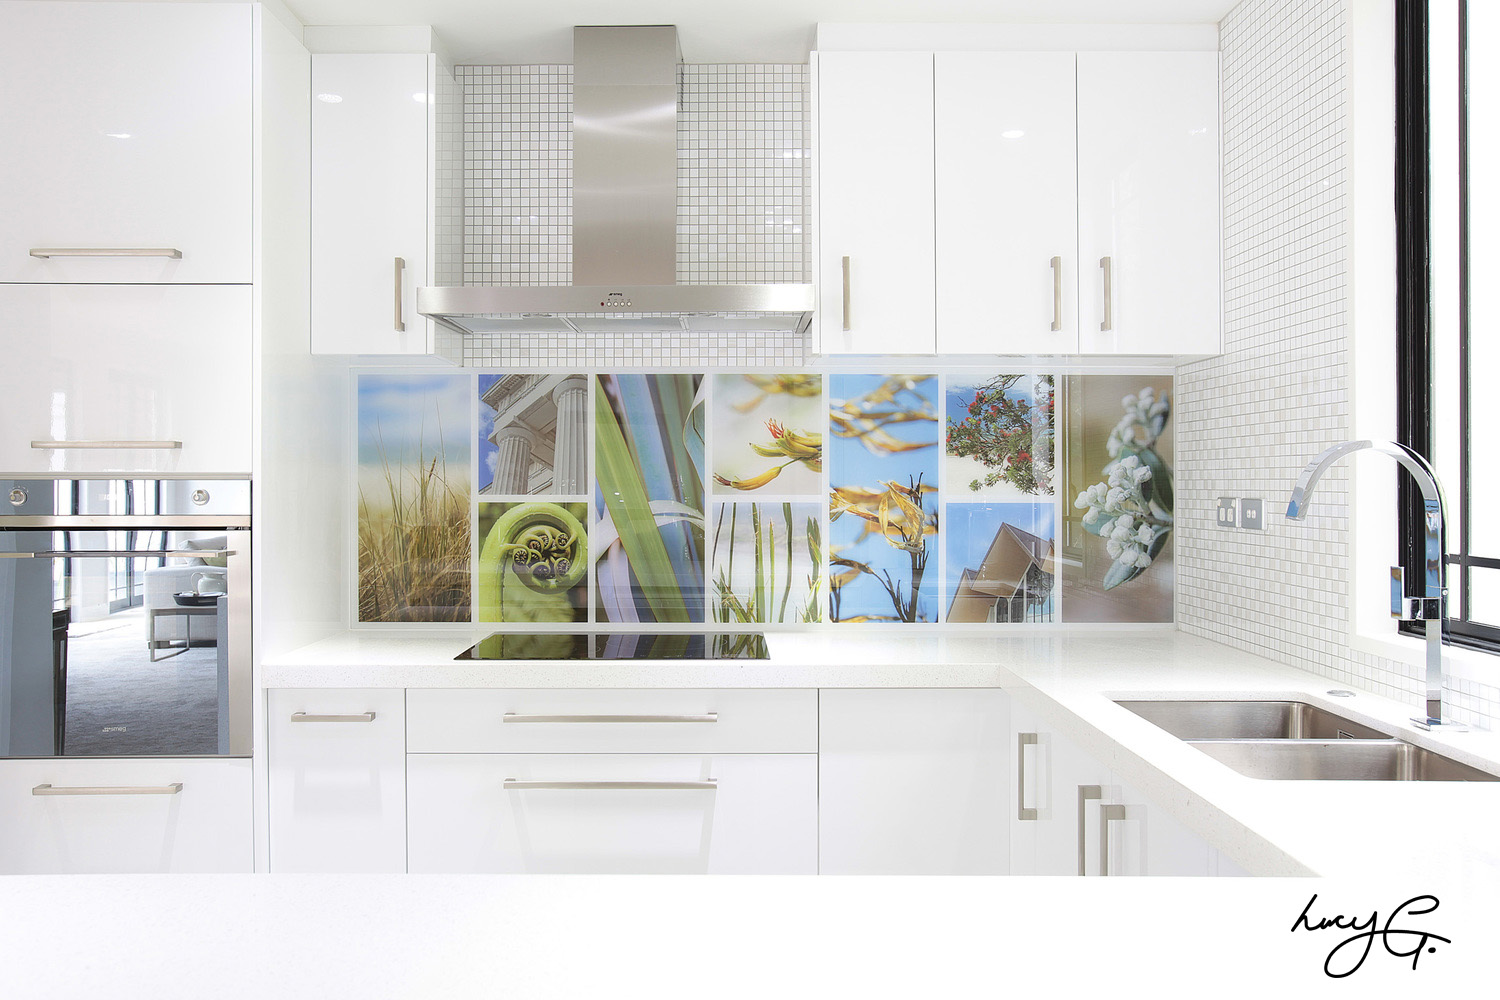 new-zealand-printed-image-splashback-lucy-g.jpg